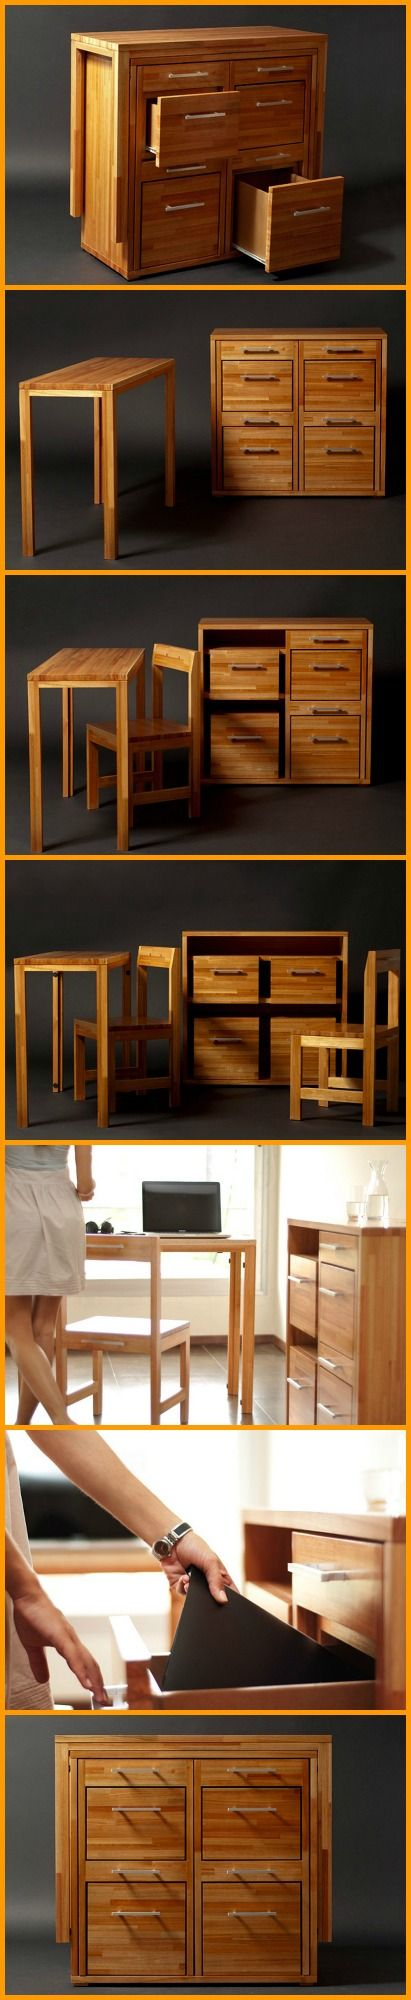 If transformers had a furniture version this cupboard would be it. See for yourself how it transforms. http://theownerbuildernetwork.co/jv8d